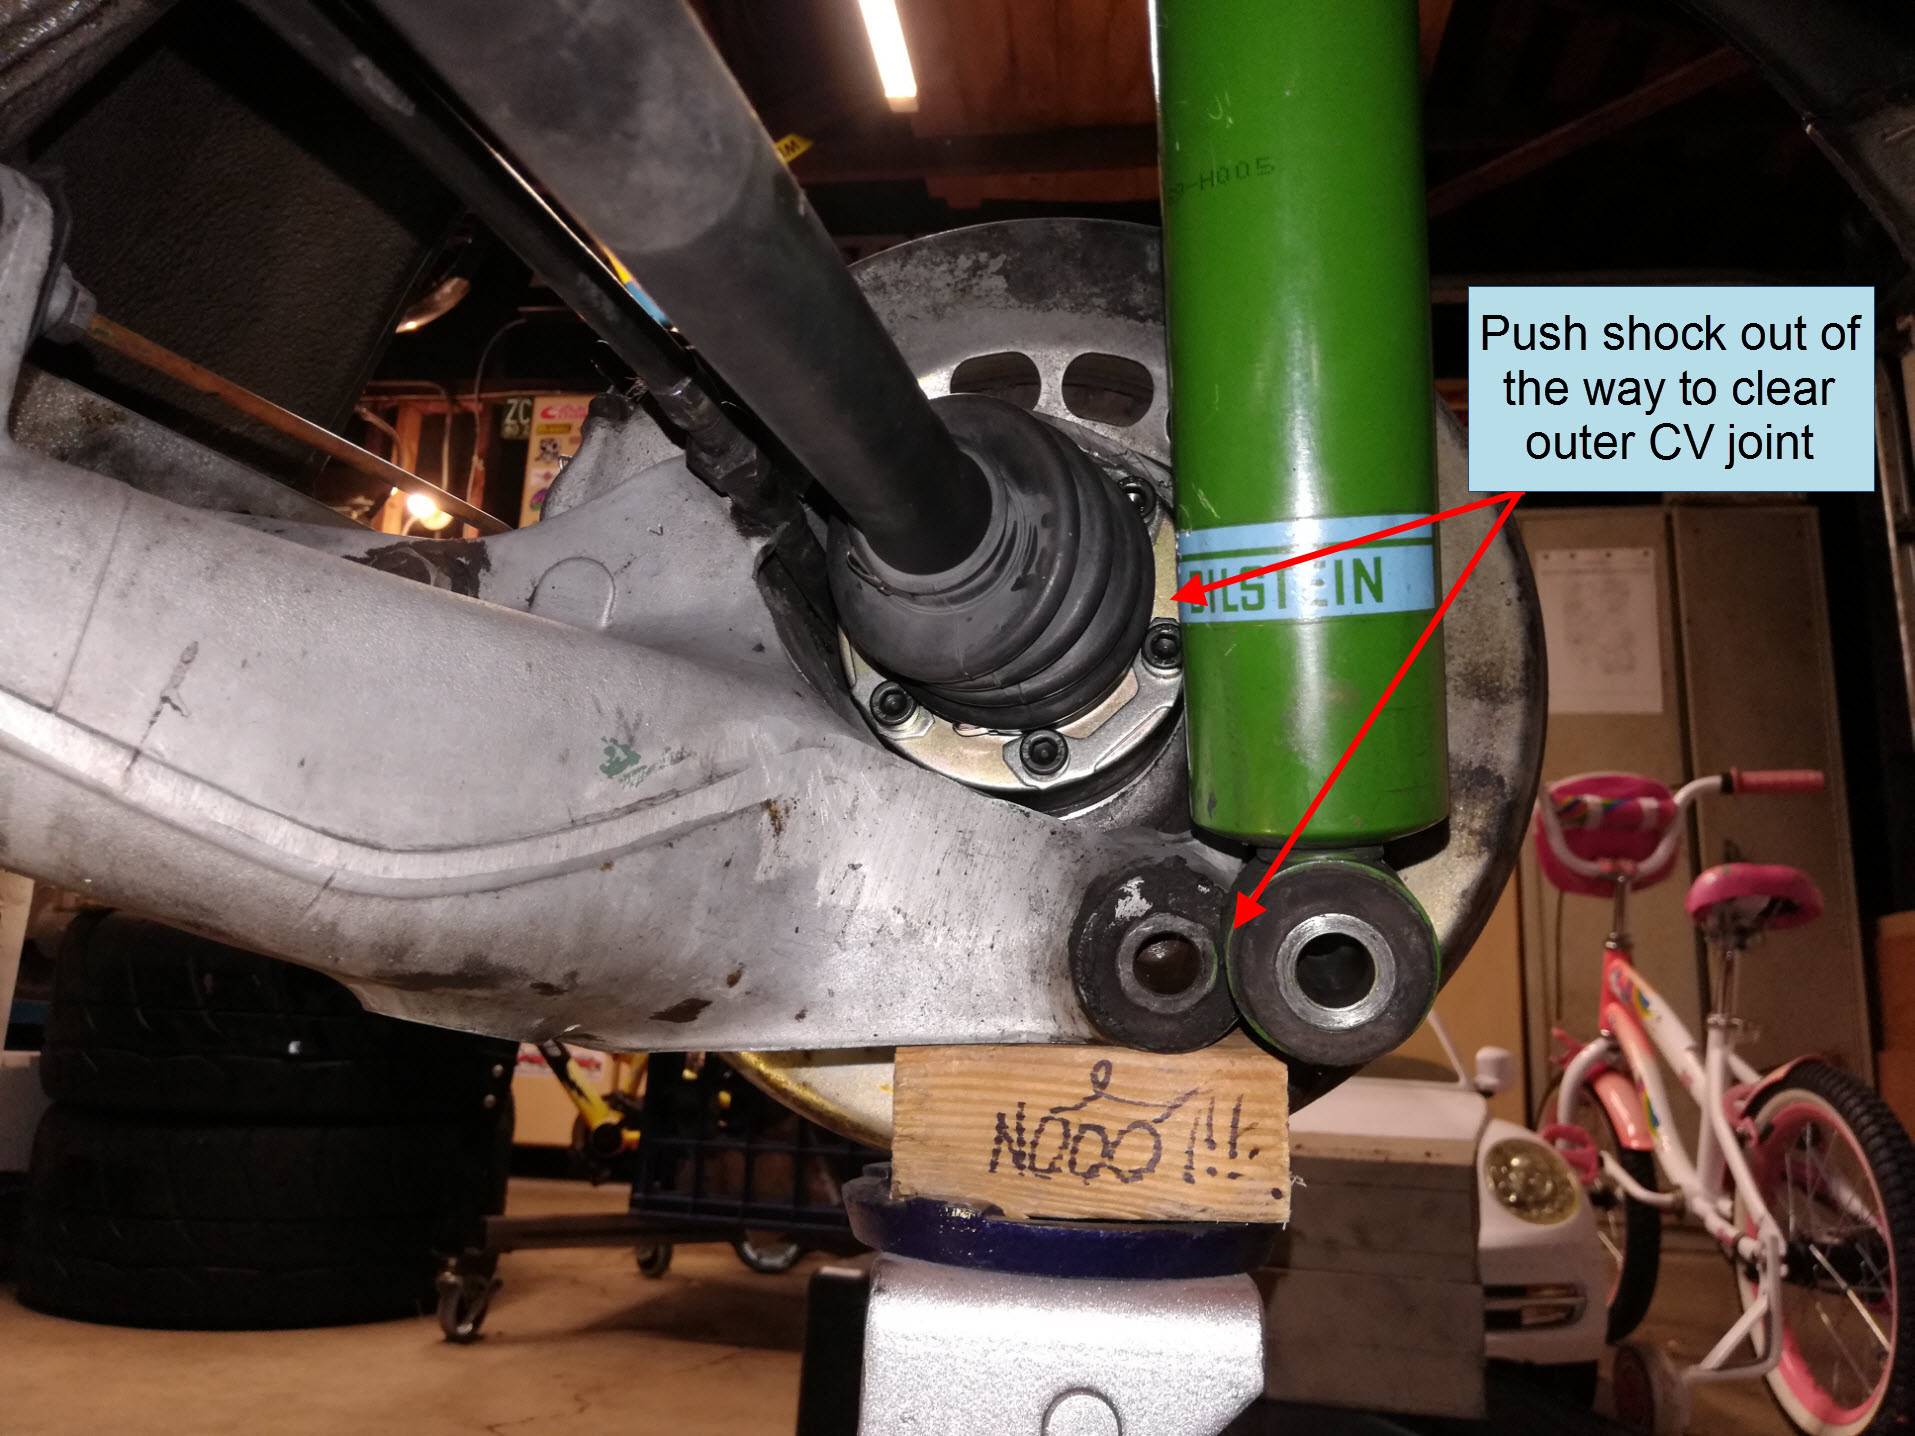 Air-cooled Porsche 911 outer CV joint installation with shock clearance.